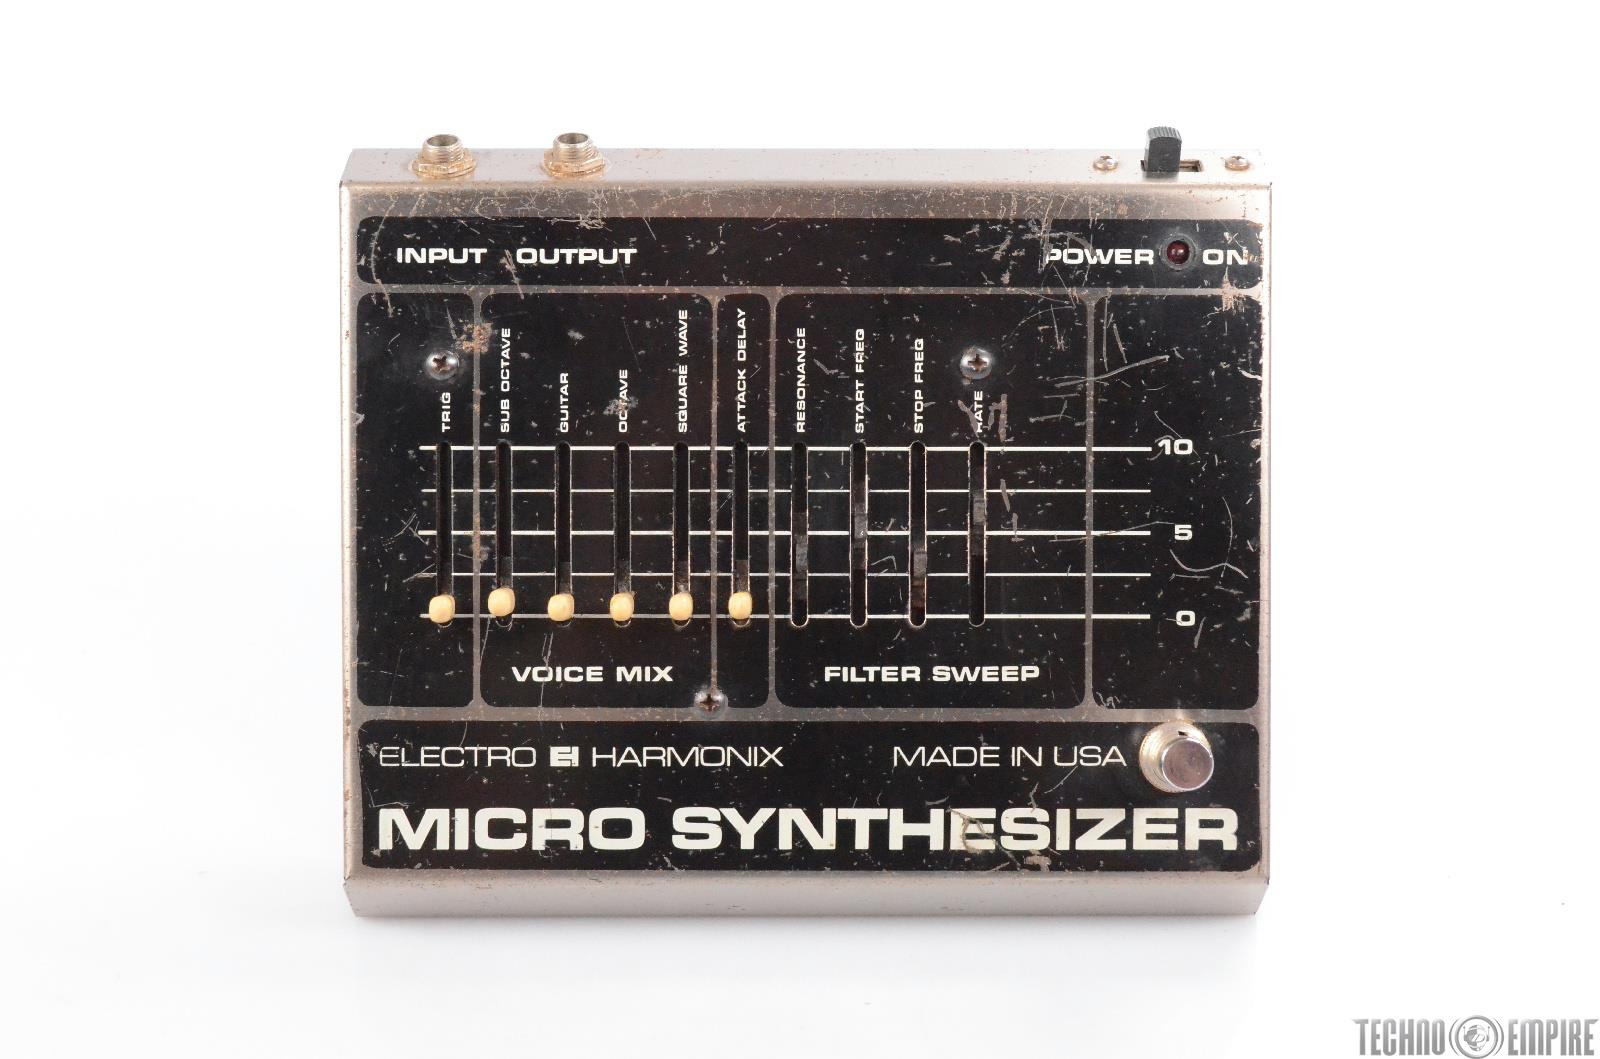 Electro-Harmonix Micro Synthesizer Analog Guitar Pedal Owned by Matt Hyde #30141